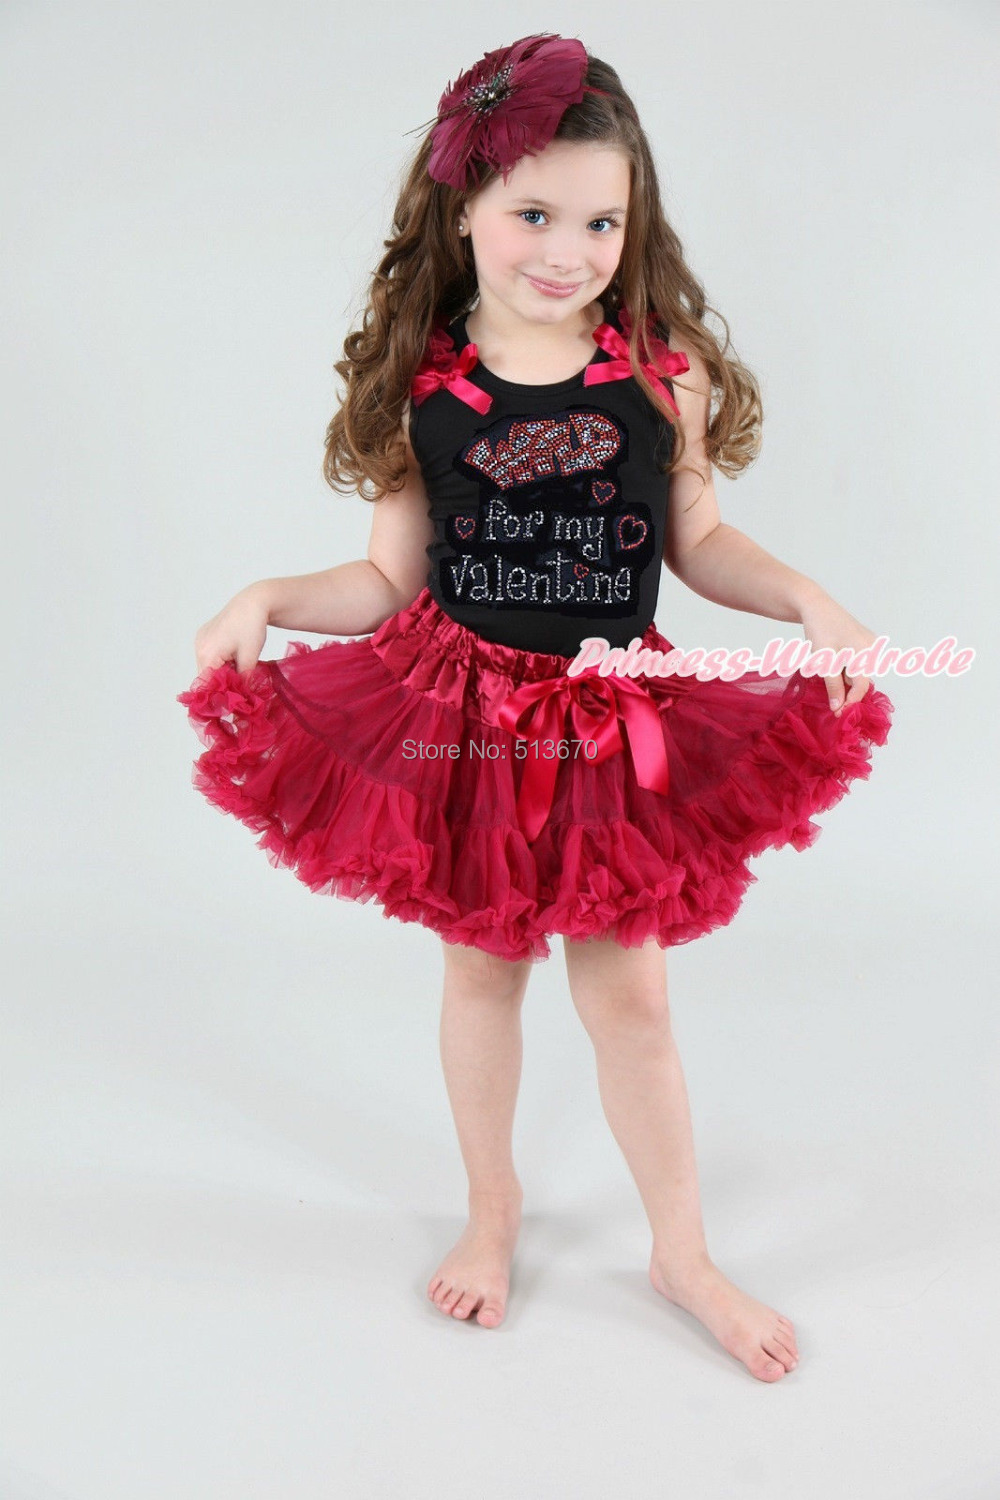 Sparkle Rhinestone Wild For Valentine Girl Black Top Wine Red Pettiskirt 1-8Y MAPSA0157 xmas red orange yellow black roses brown top baby girl pettiskirt outfit 1 8y mapsa0038